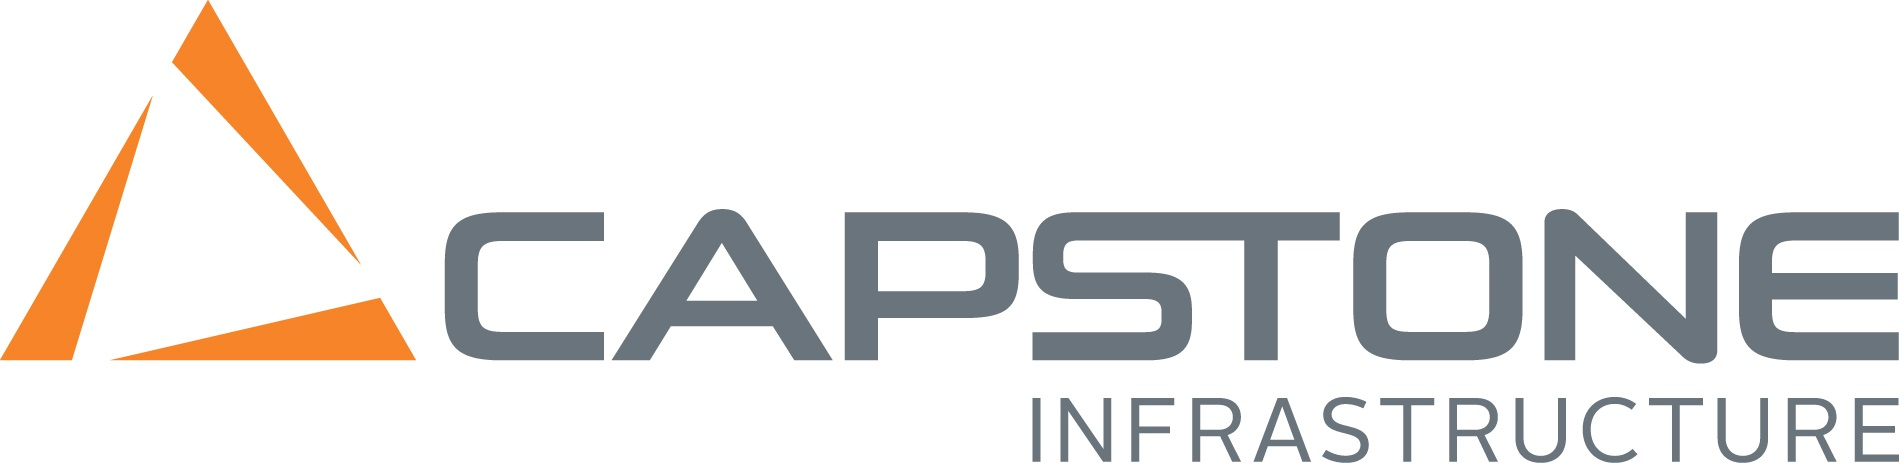 Capstone Infrastructure Corporation Announces the Acquisition of a 132 MWac Solar Development Project in Alberta